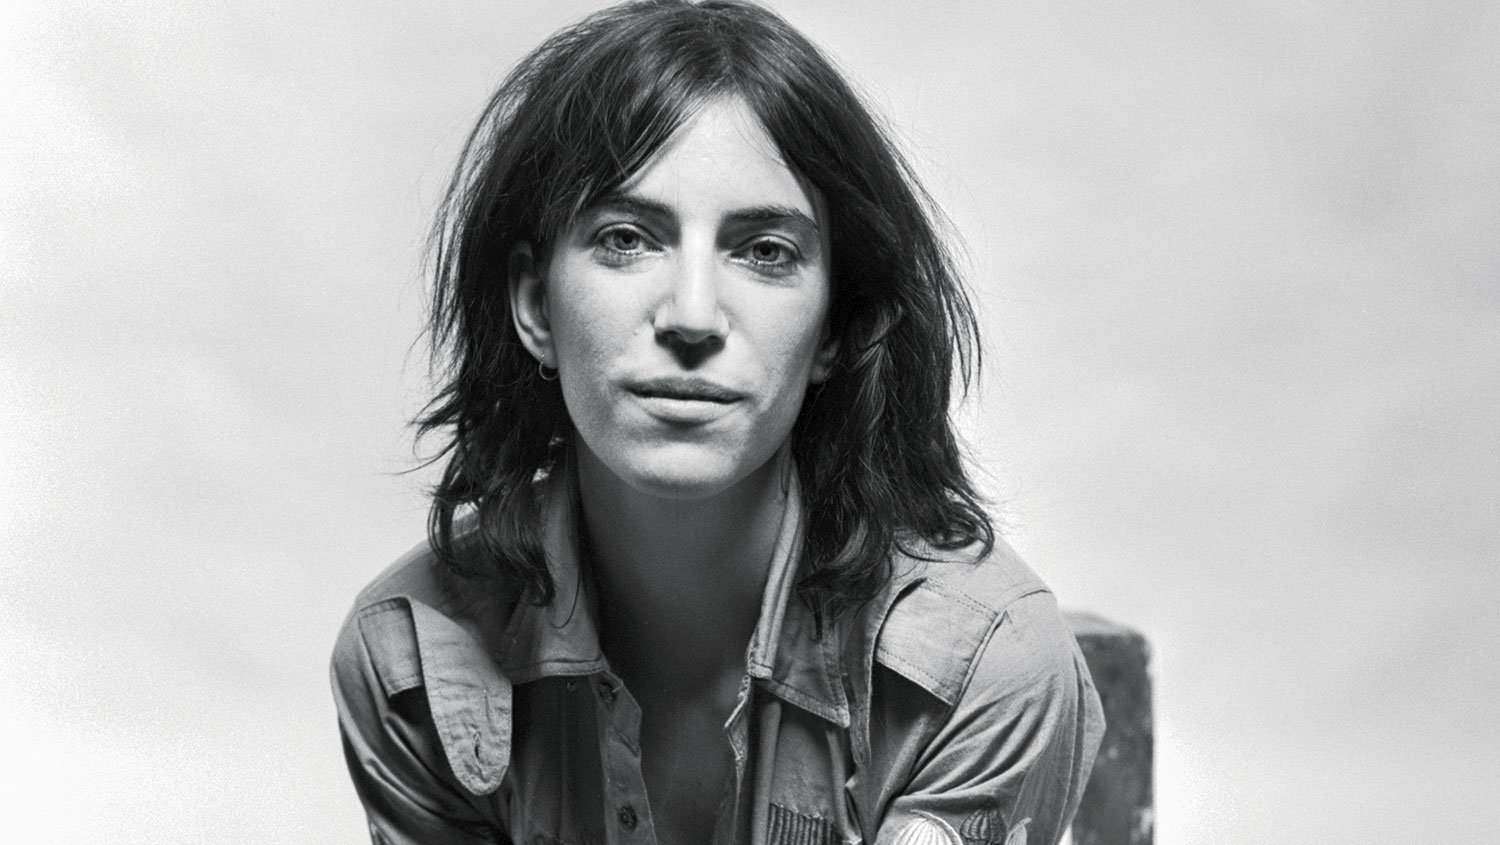 Patti Smith Biography, Age, Weight, Height, Friend, Like, Affairs, Favourite, Birthdate & Other